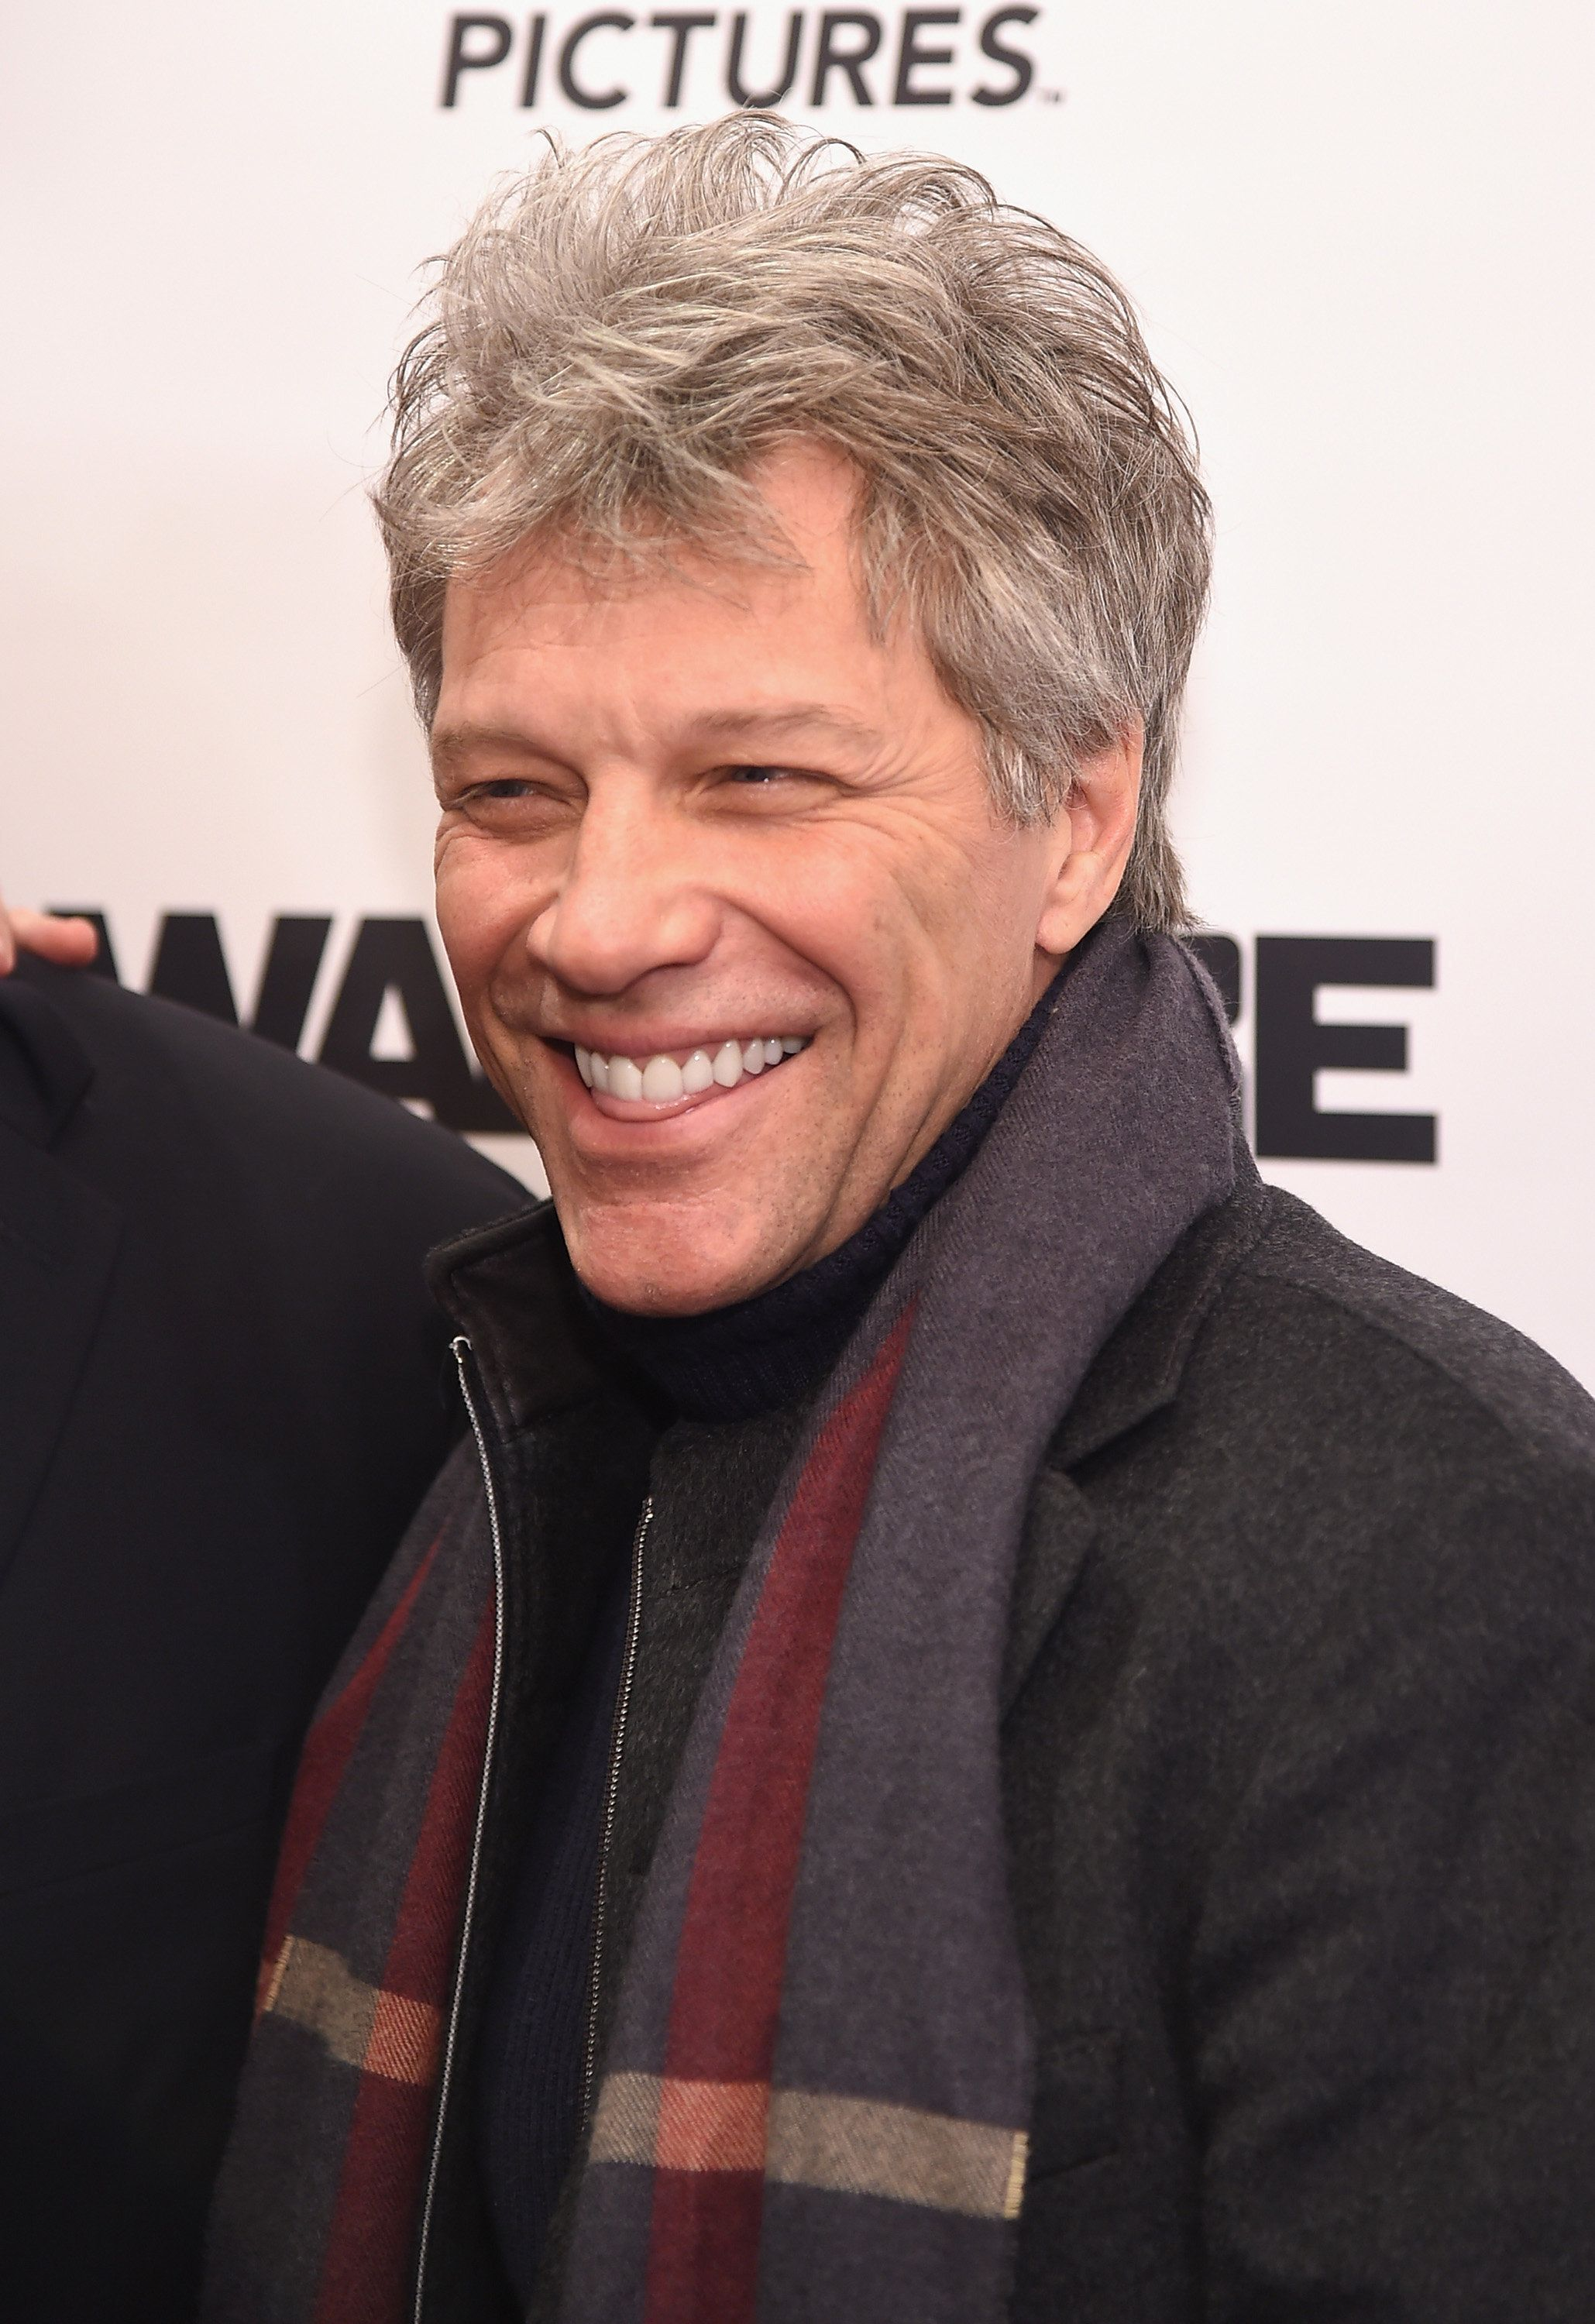 NEW YORK, NY - DECEMBER 02:  Jon Bon Jovi attends 'The Wannabe' New York premiere at Crosby Street Hotel on December 2, 2015 in New York City.  (Photo by Michael Loccisano/Getty Images)